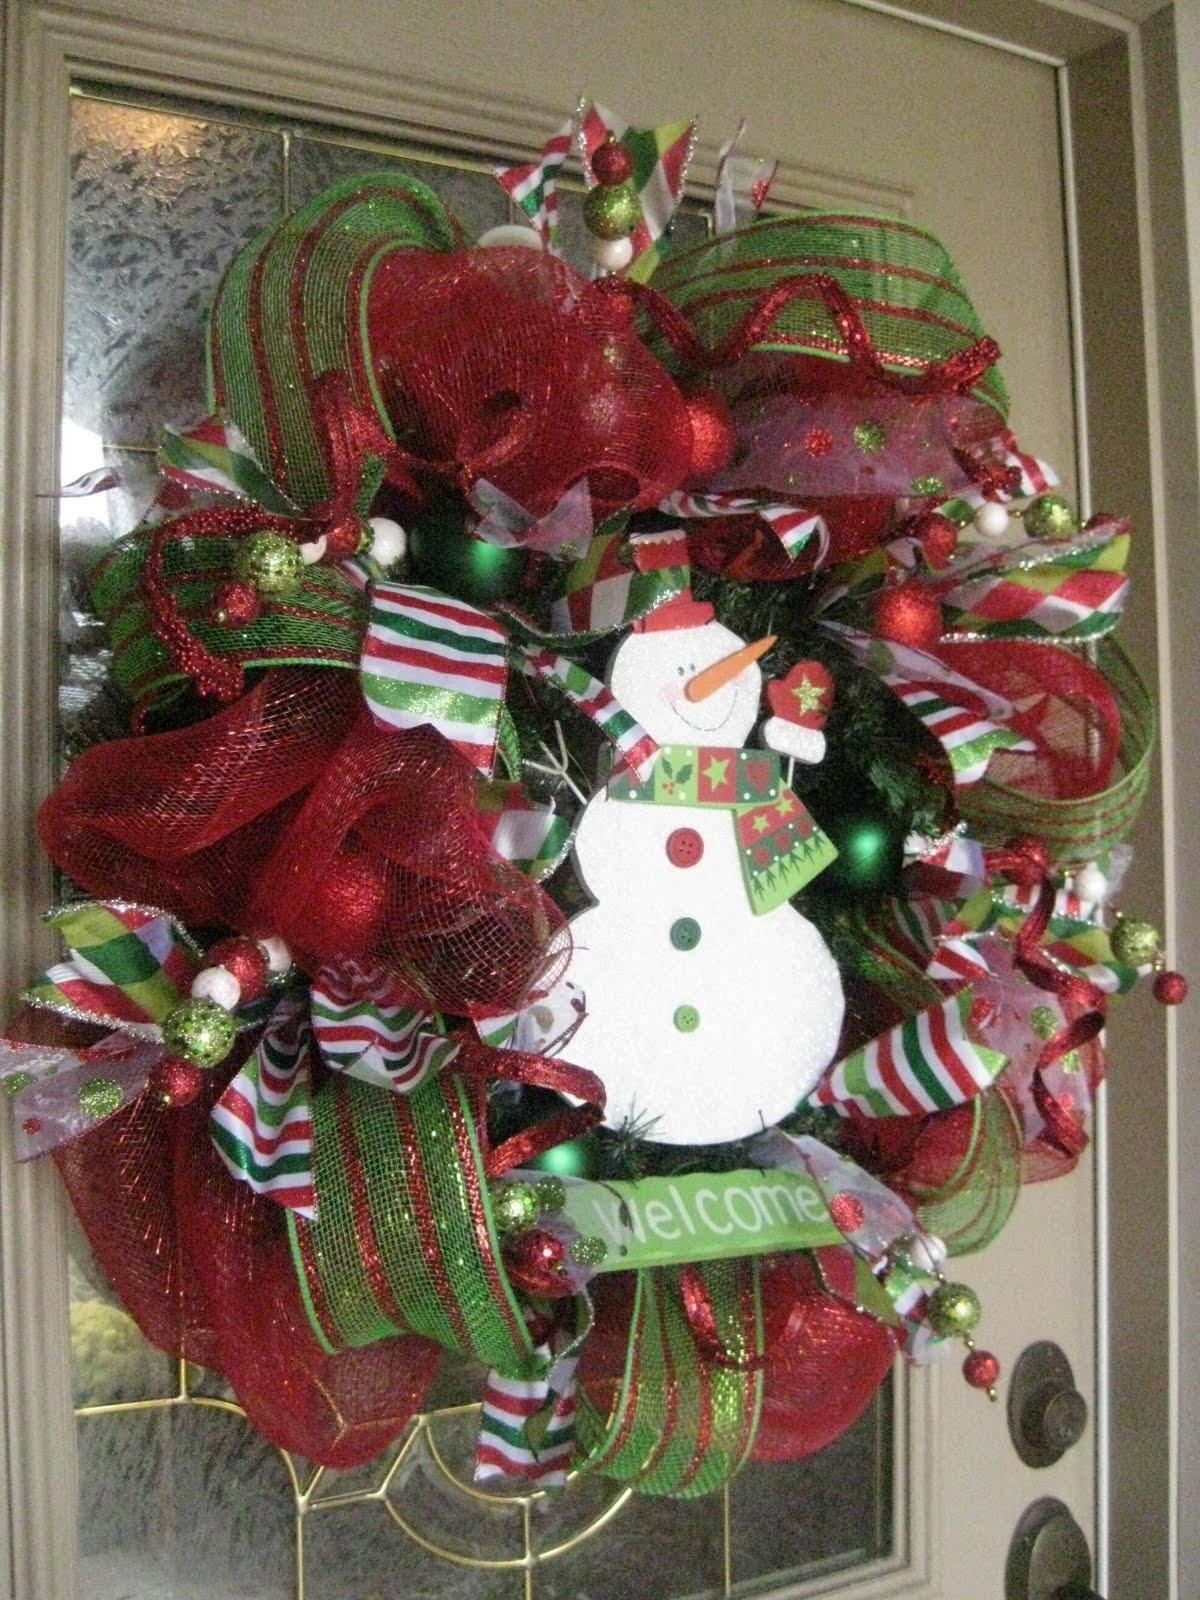 Kristen Creations Christmas Mesh Wreath Tutorial